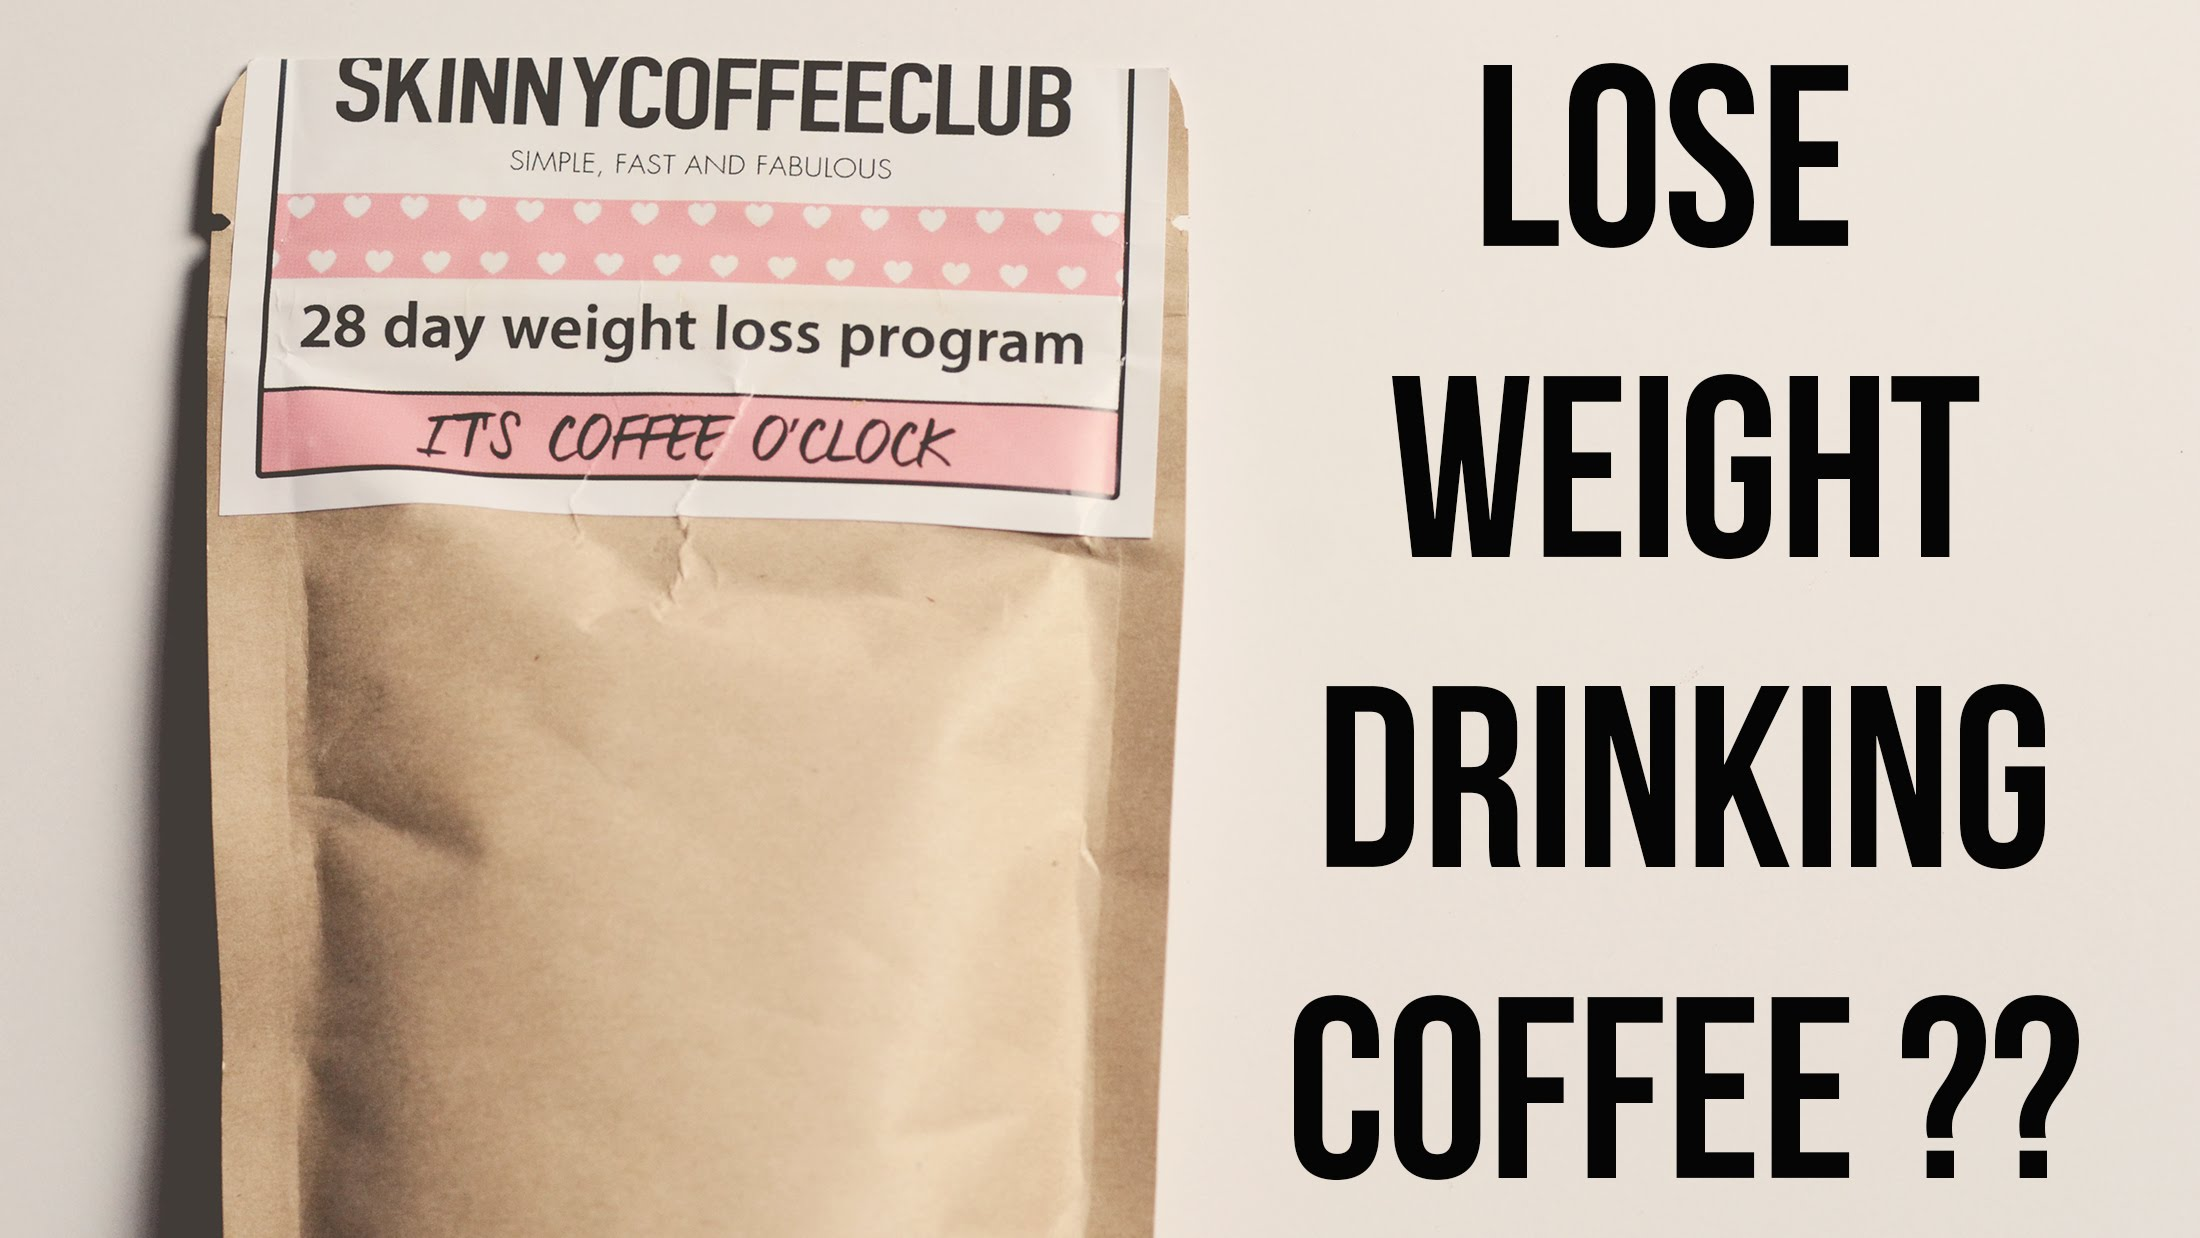 Skinny Coffee Club Diet Review Weight Loss Coffee